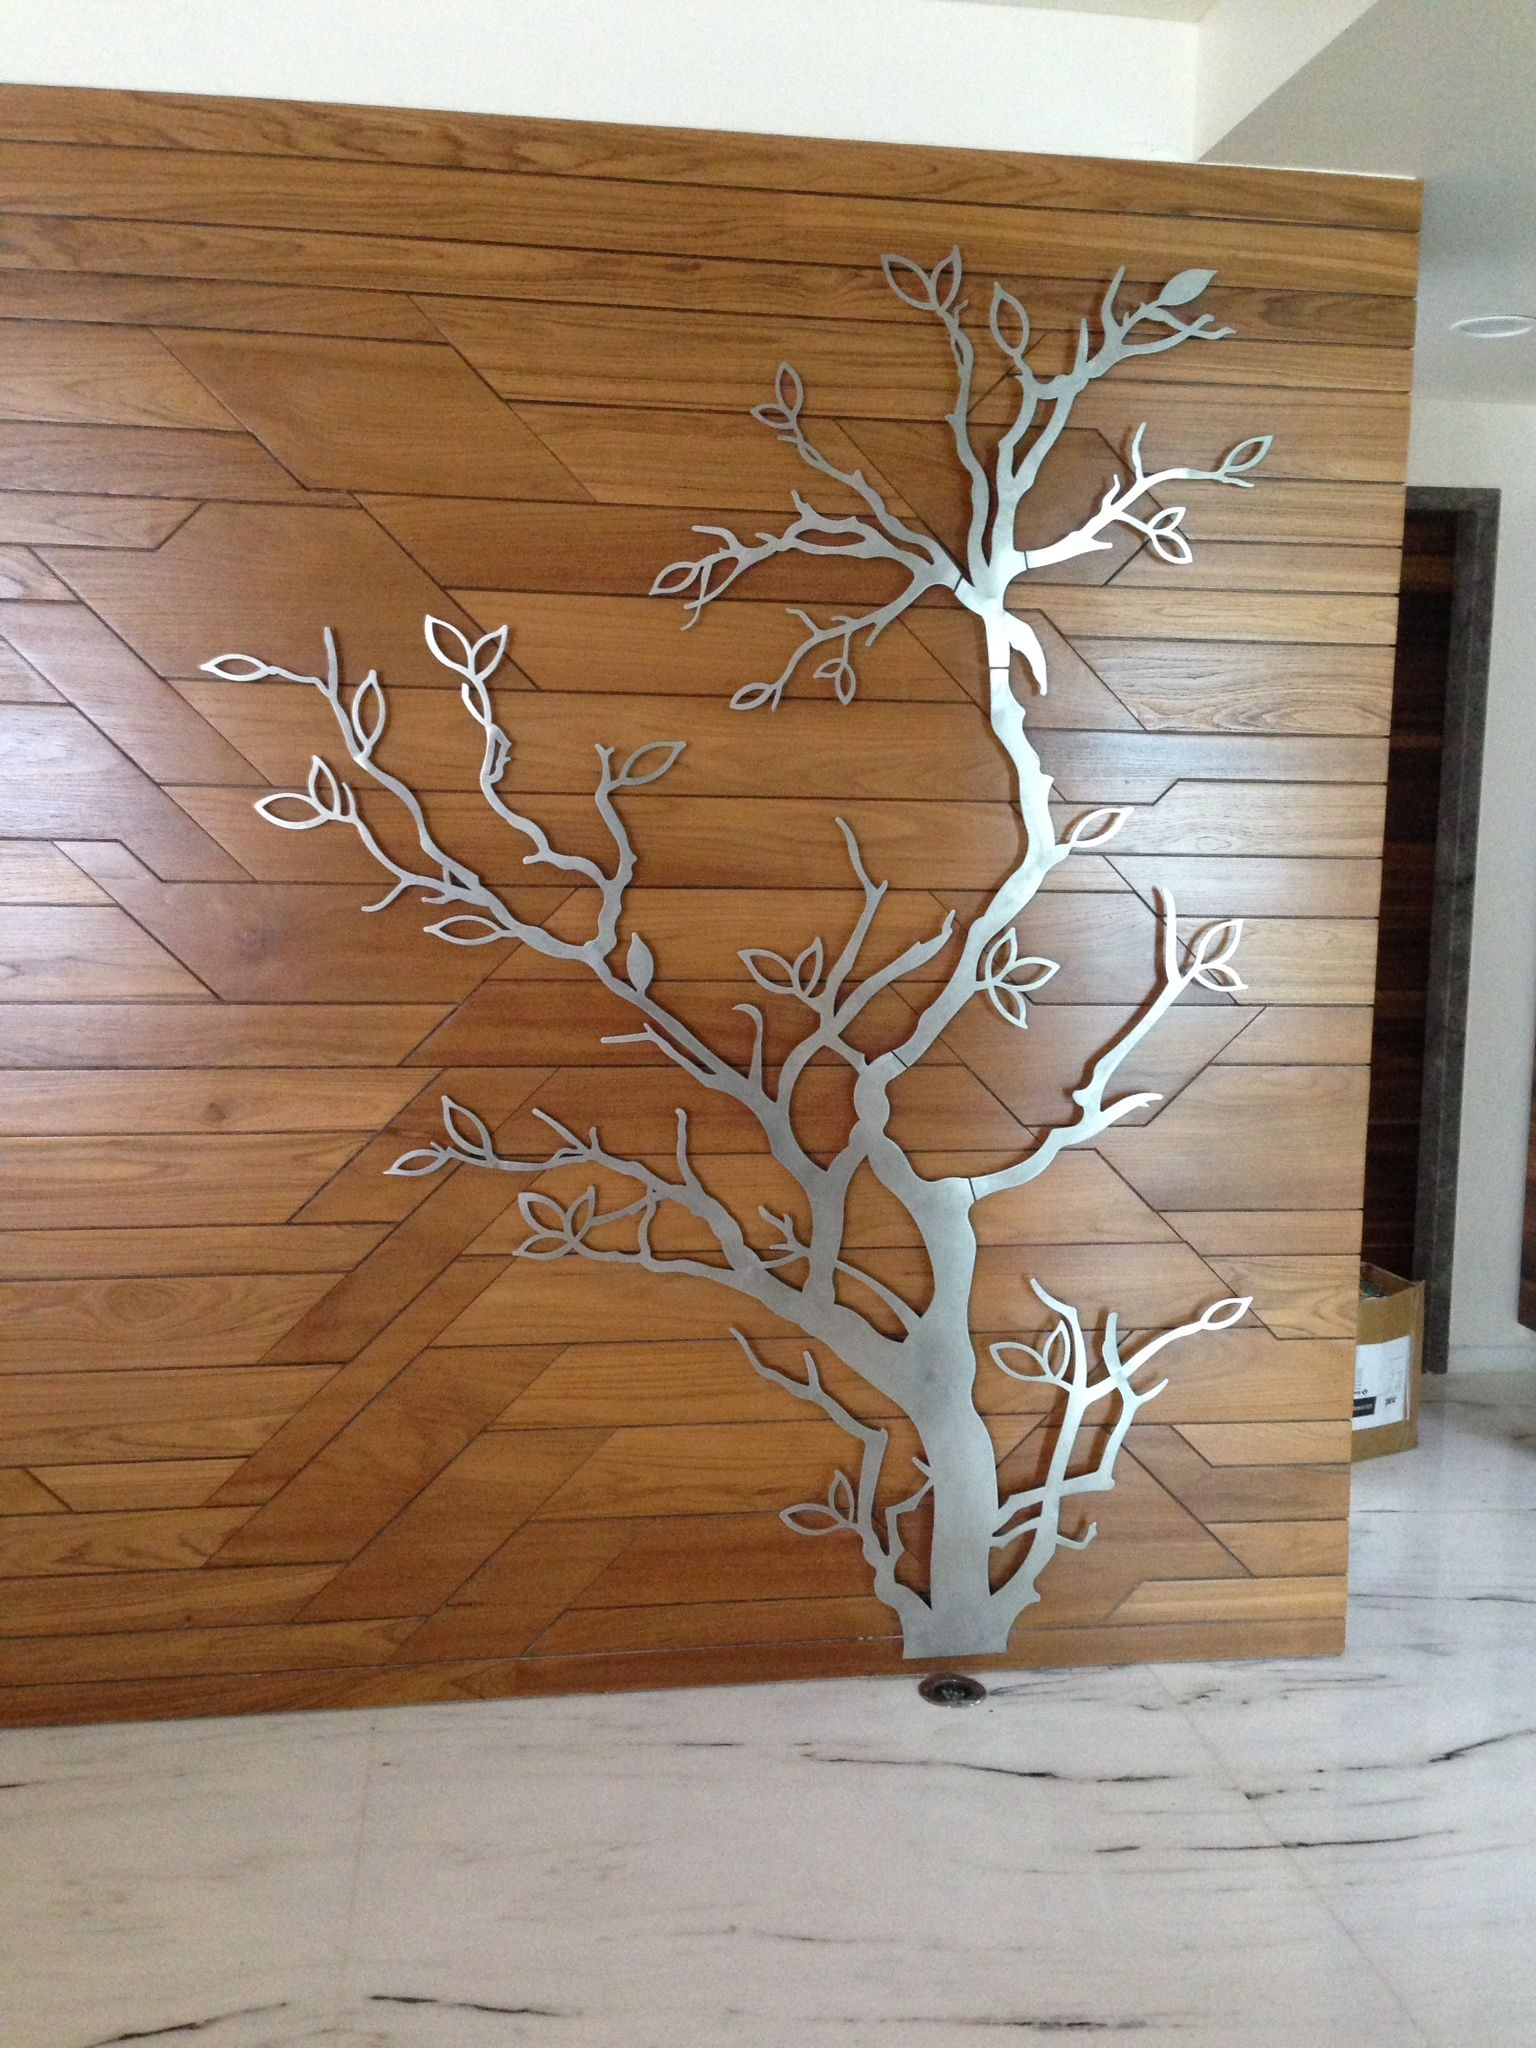 Stainless Steel Tree Times Art Tree Wall Decor Wall Wood Wall Art